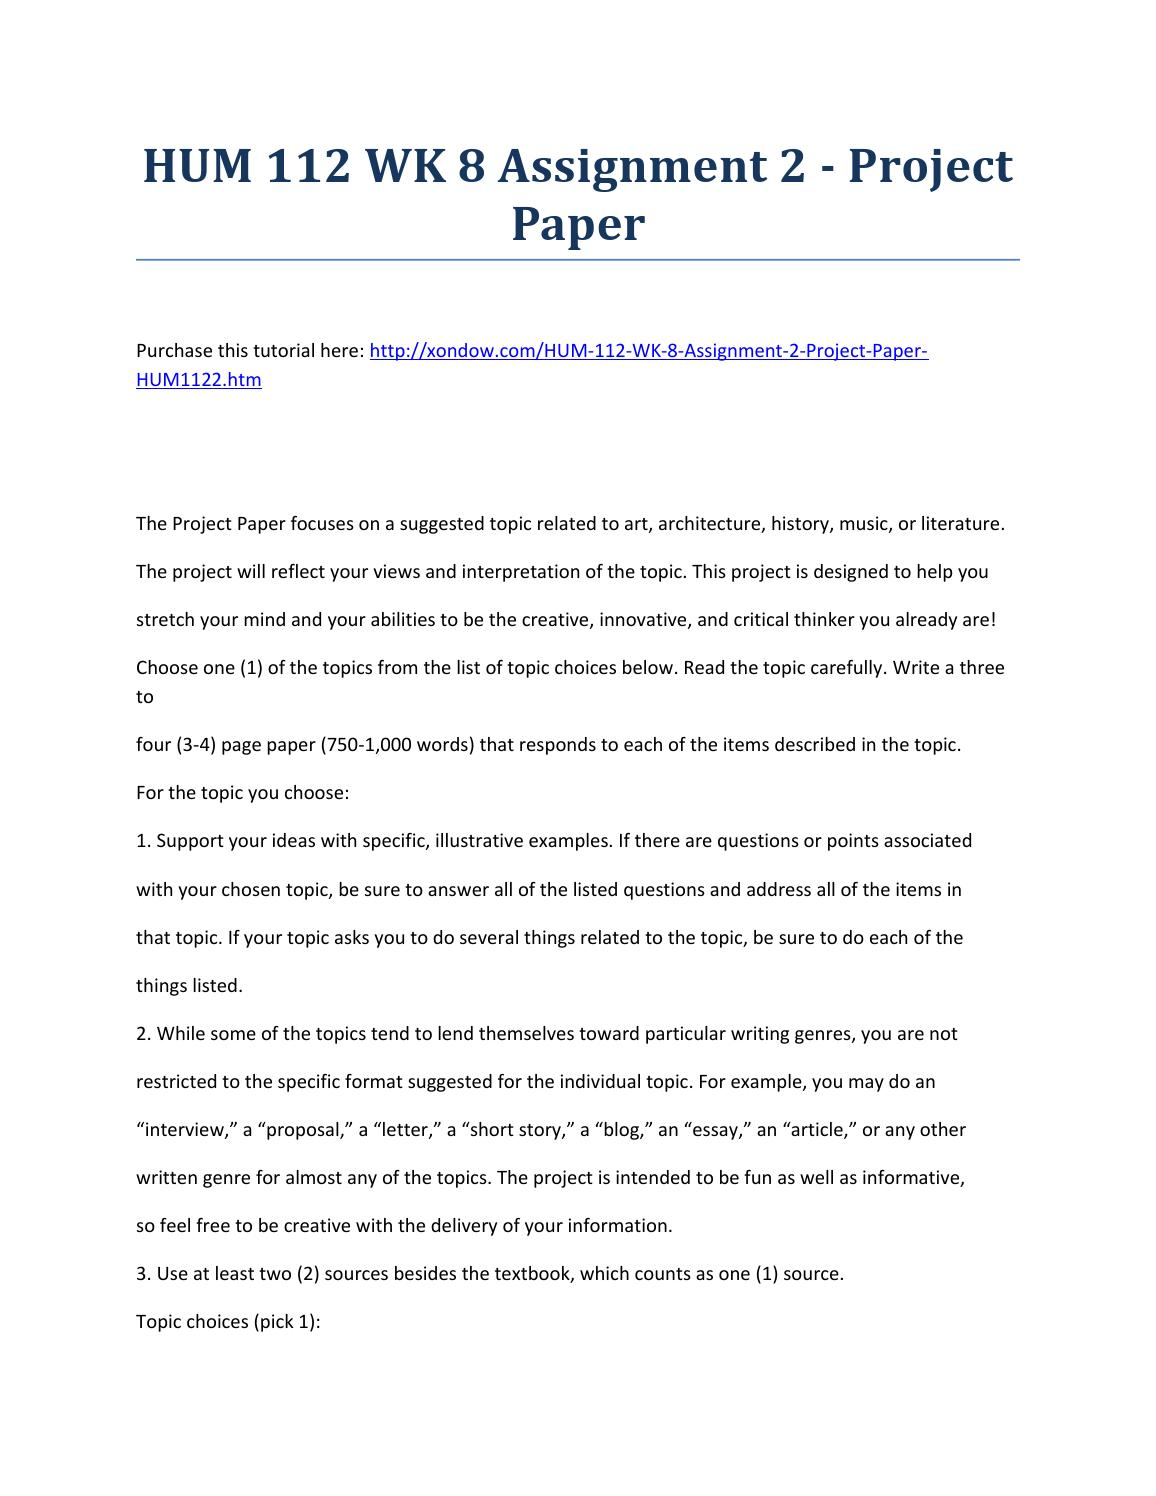 Homework Help - Post Questions, Assignments & Papers